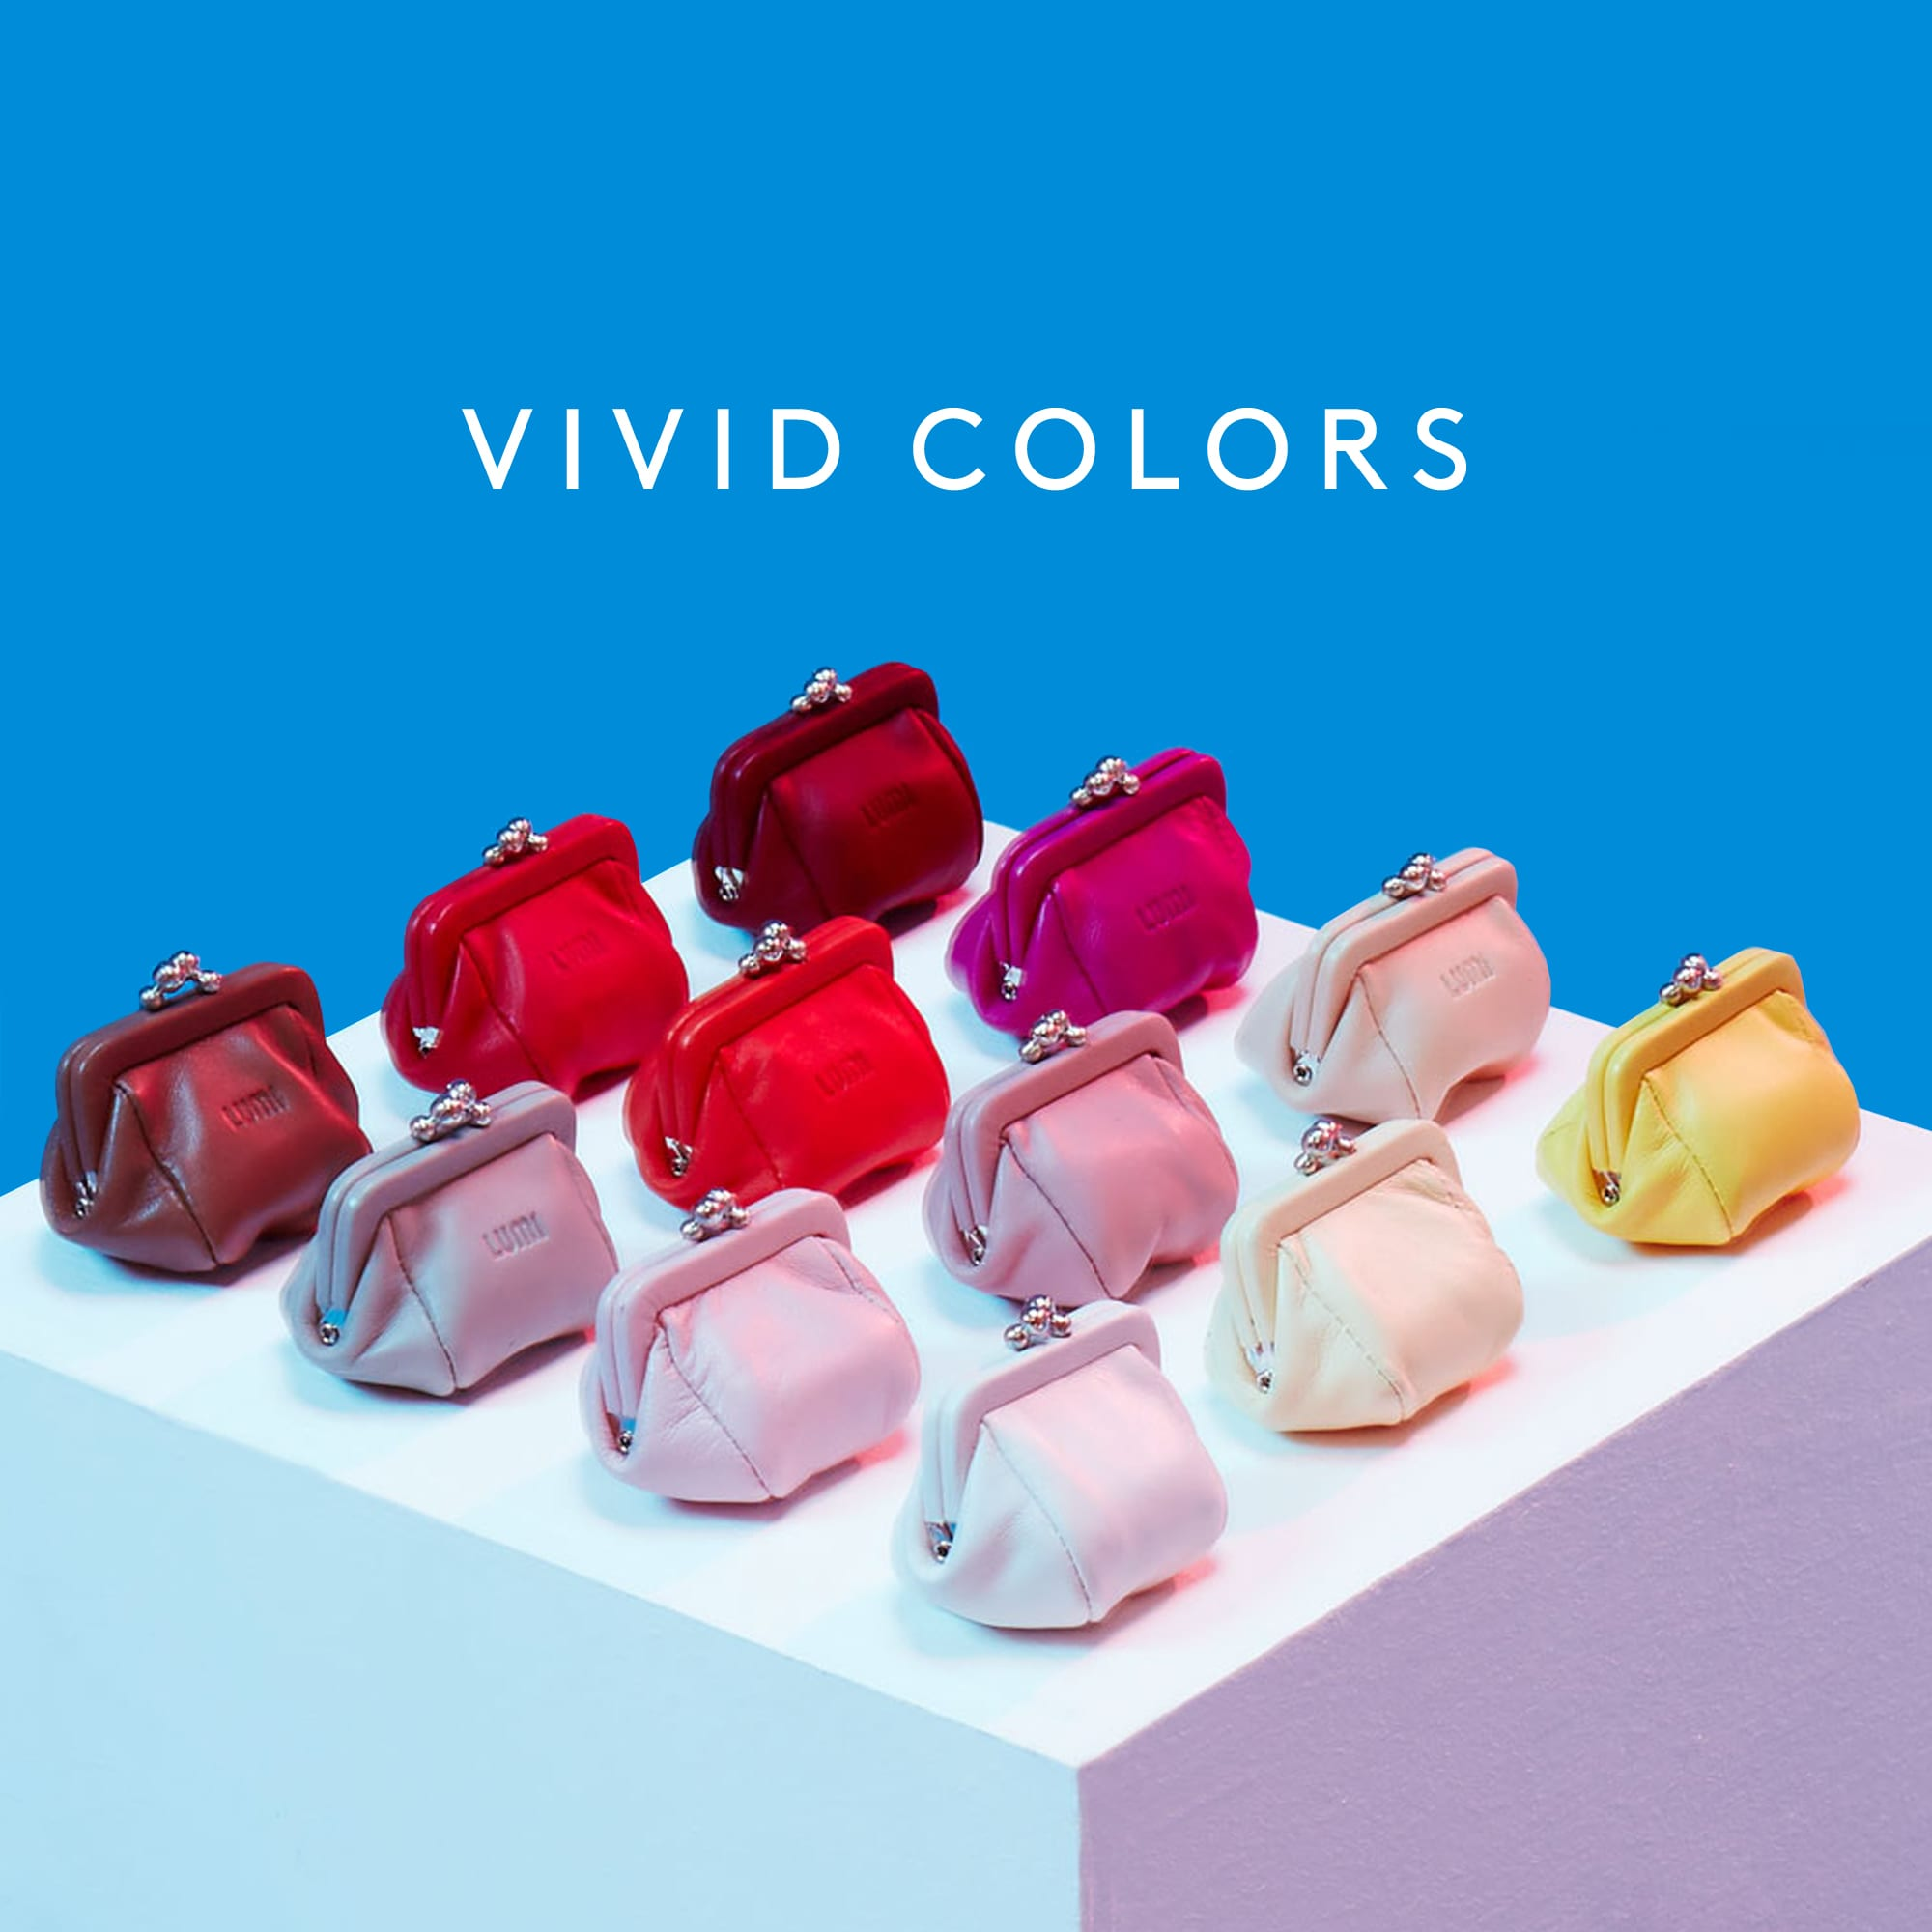 Vivid colours for Spring!